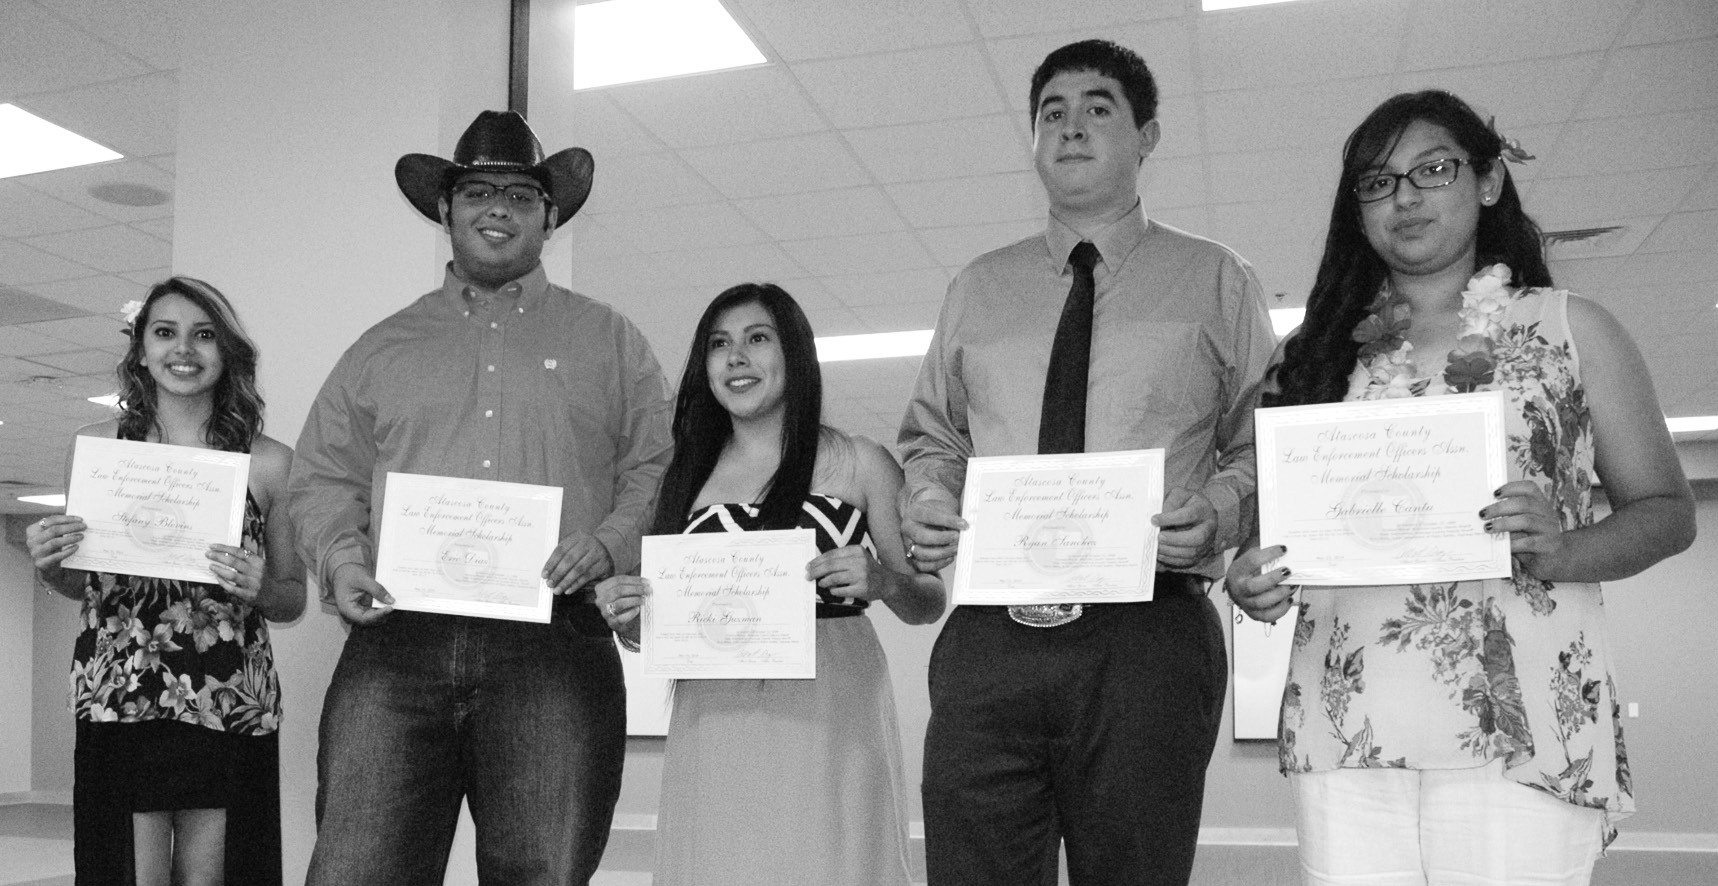 ACLEOA Thomas Monse-Mark Stephenson-Terry Miller Memorial Scholarships recipients are, left to right, Stefany Blevins, Eric Diaz, Ricki Guzman, Ryan Sanchez and Gabrielle Cantu.